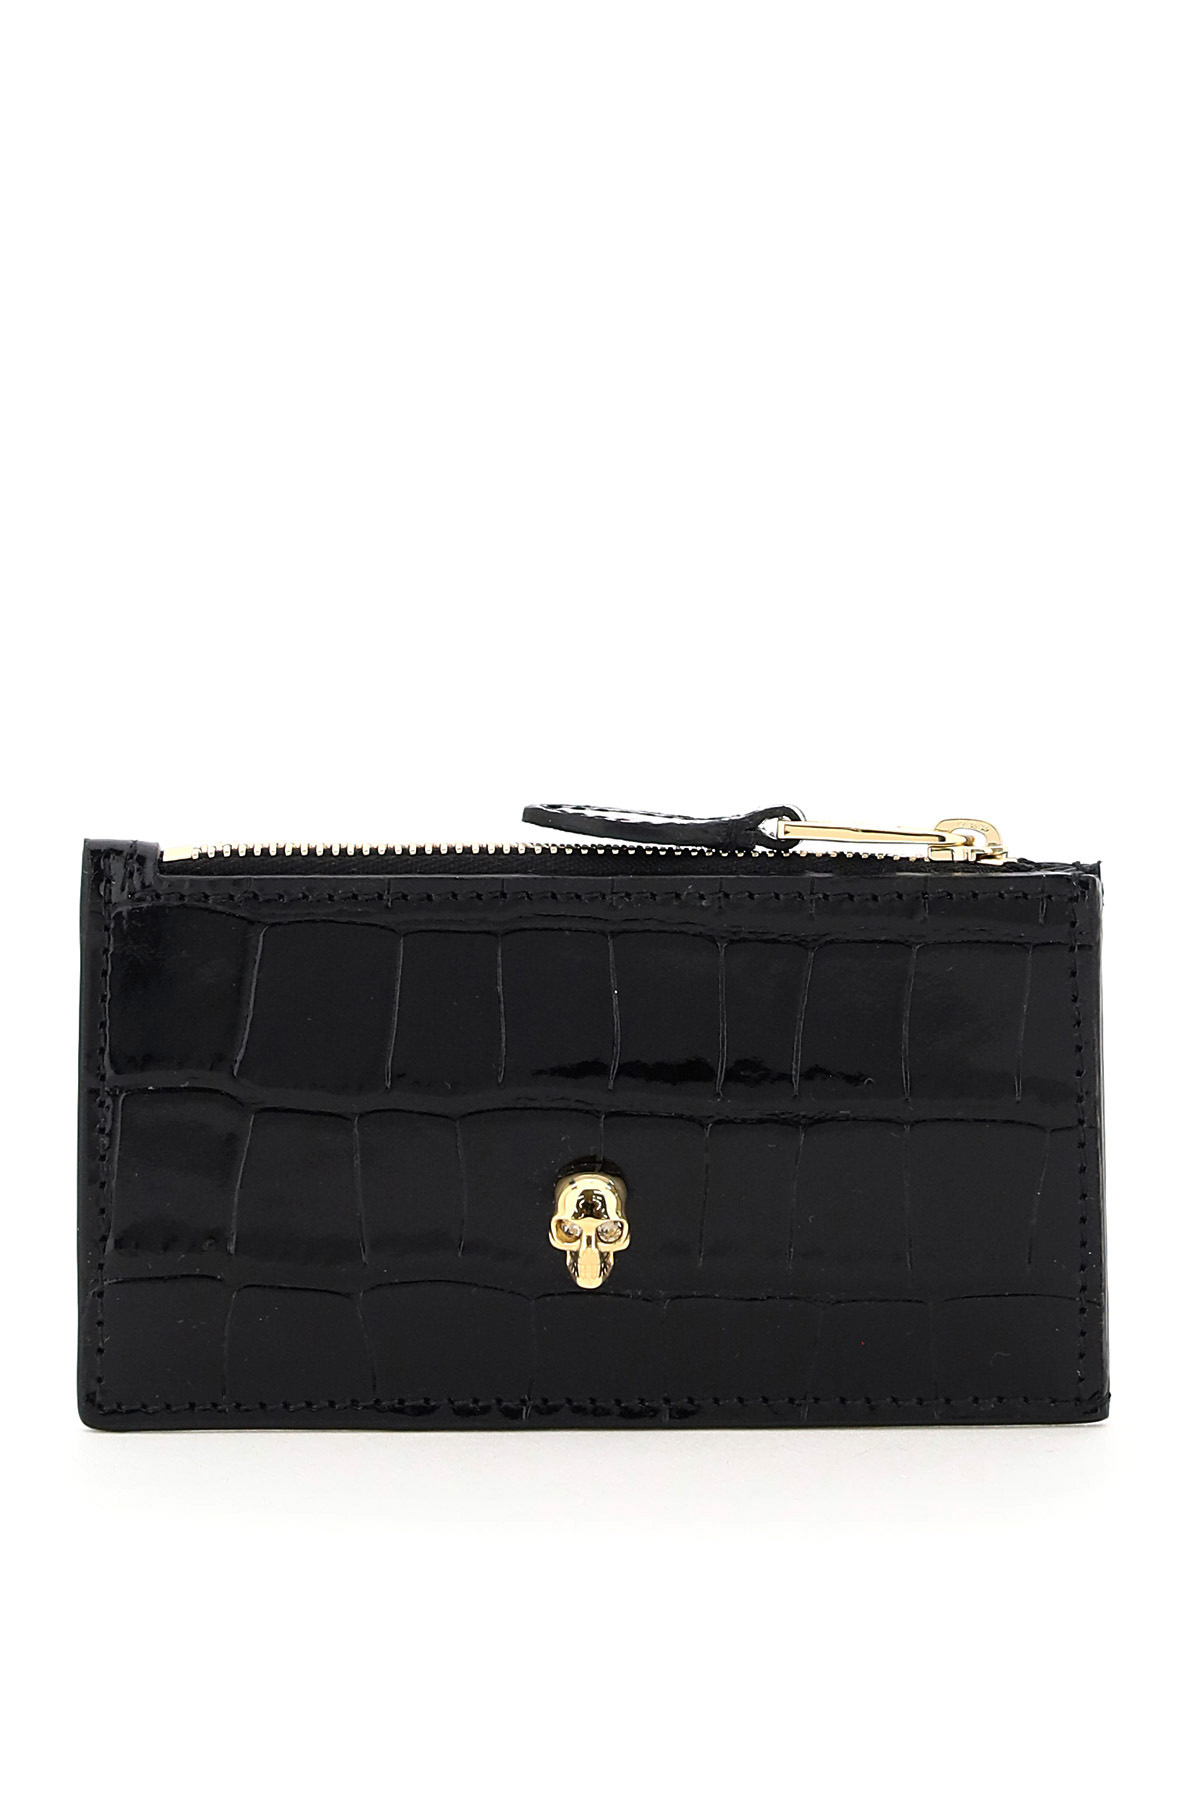 ALEXANDER MCQUEEN SKULL CARD HOLDER POUCH OS Black Leather